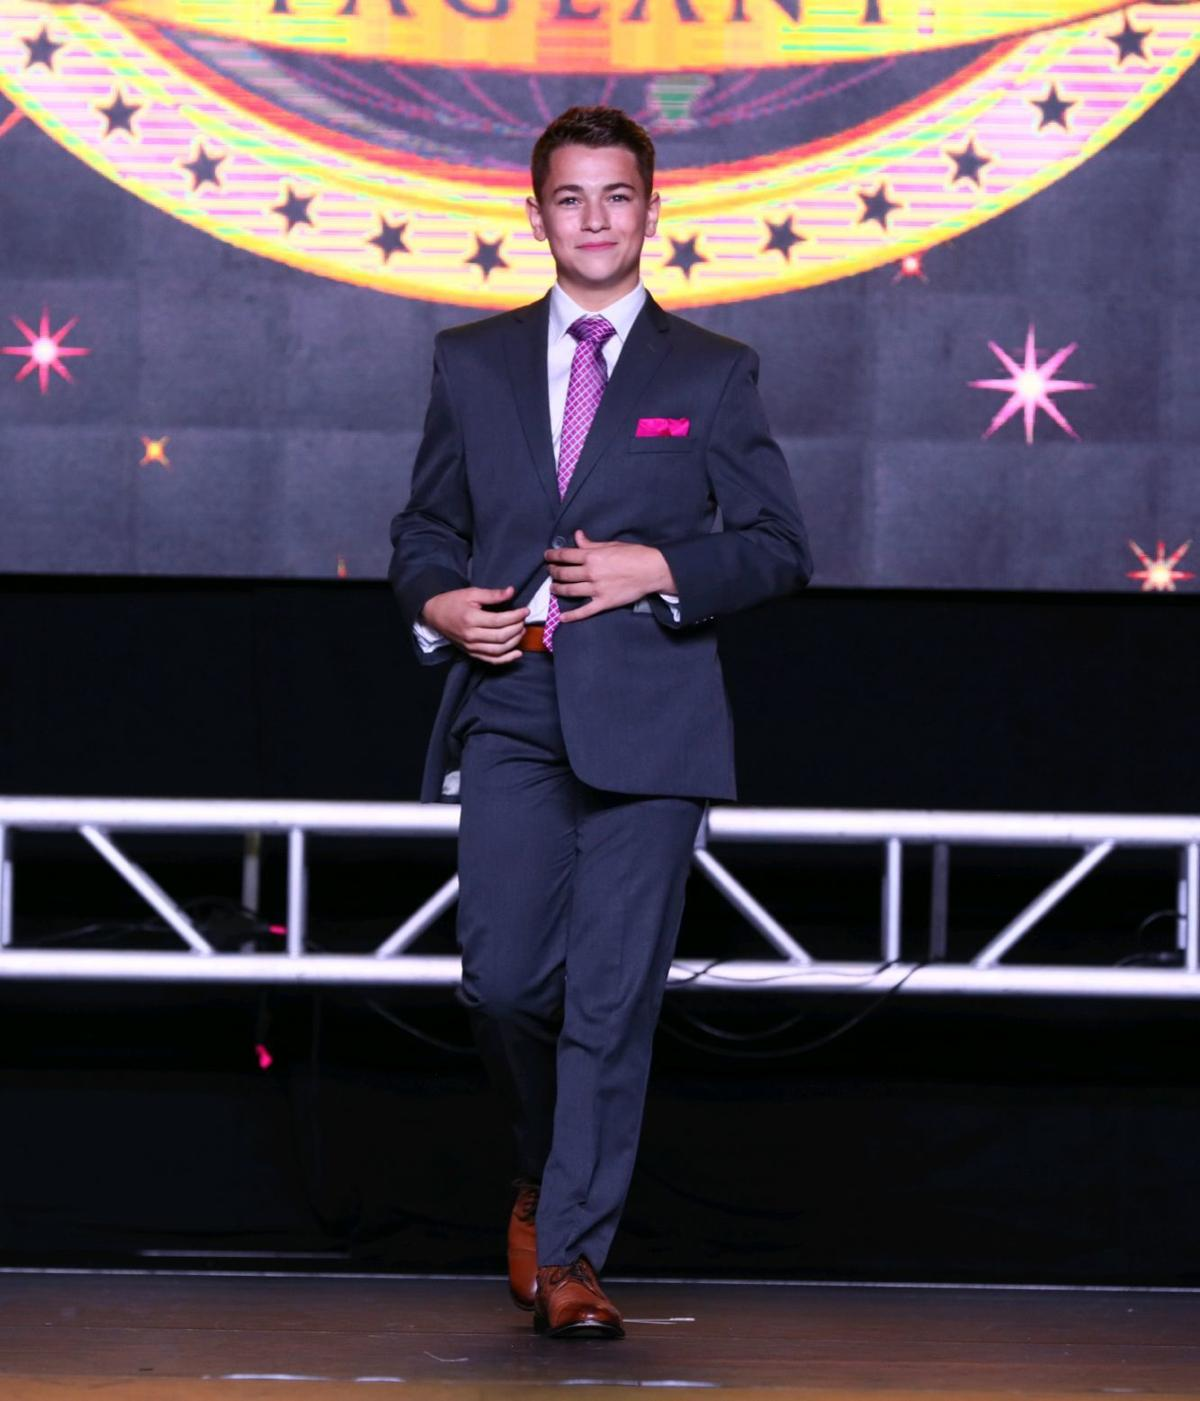 Bryson Hickman at World Dance competition